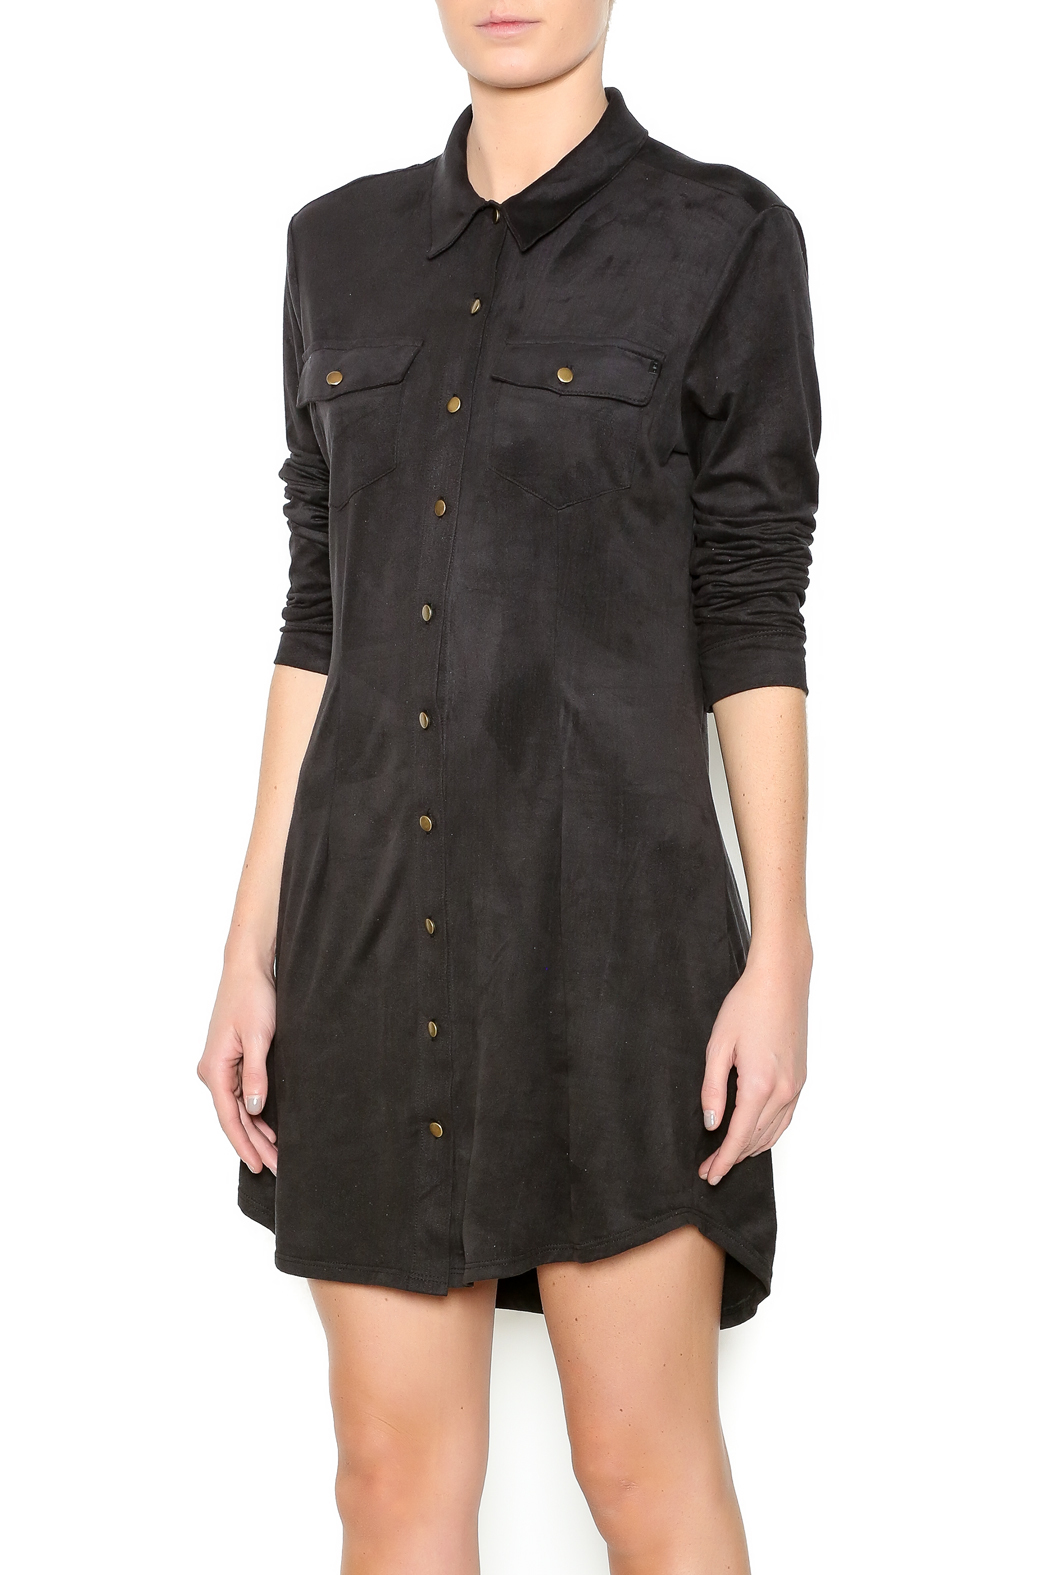 SP Black Suede Shirt Dress - Front Cropped Image